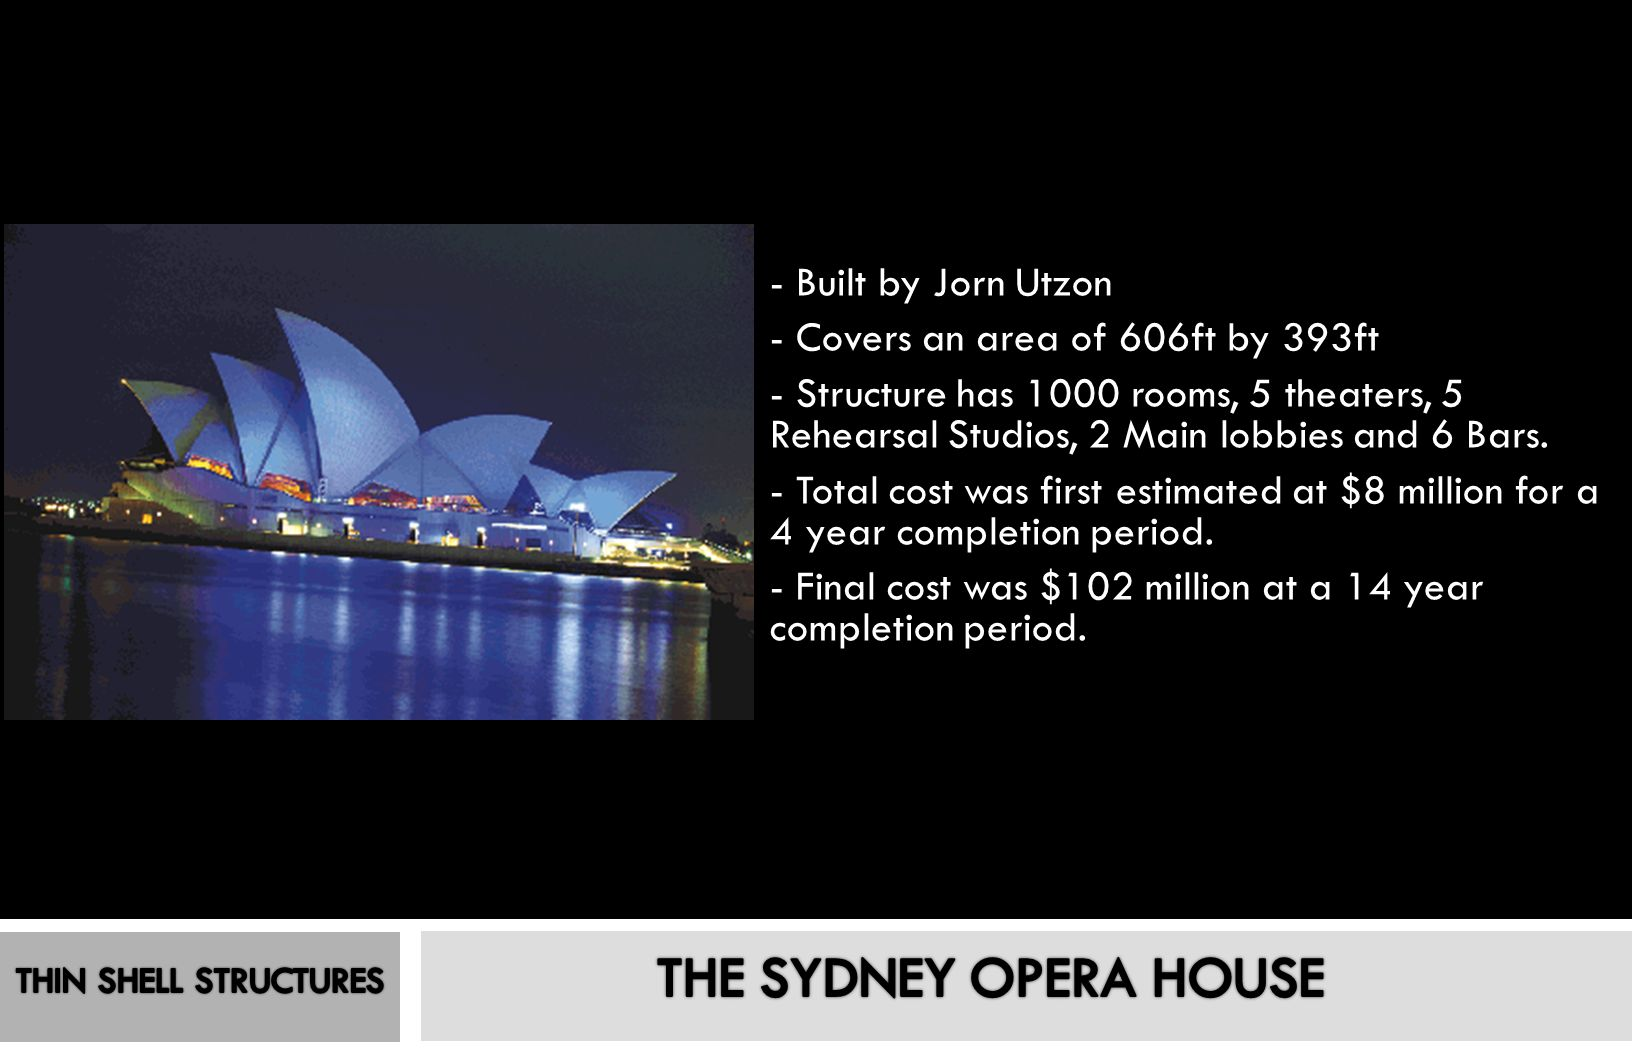 THE SYDNEY OPERA HOUSE - Built by Jorn Utzon